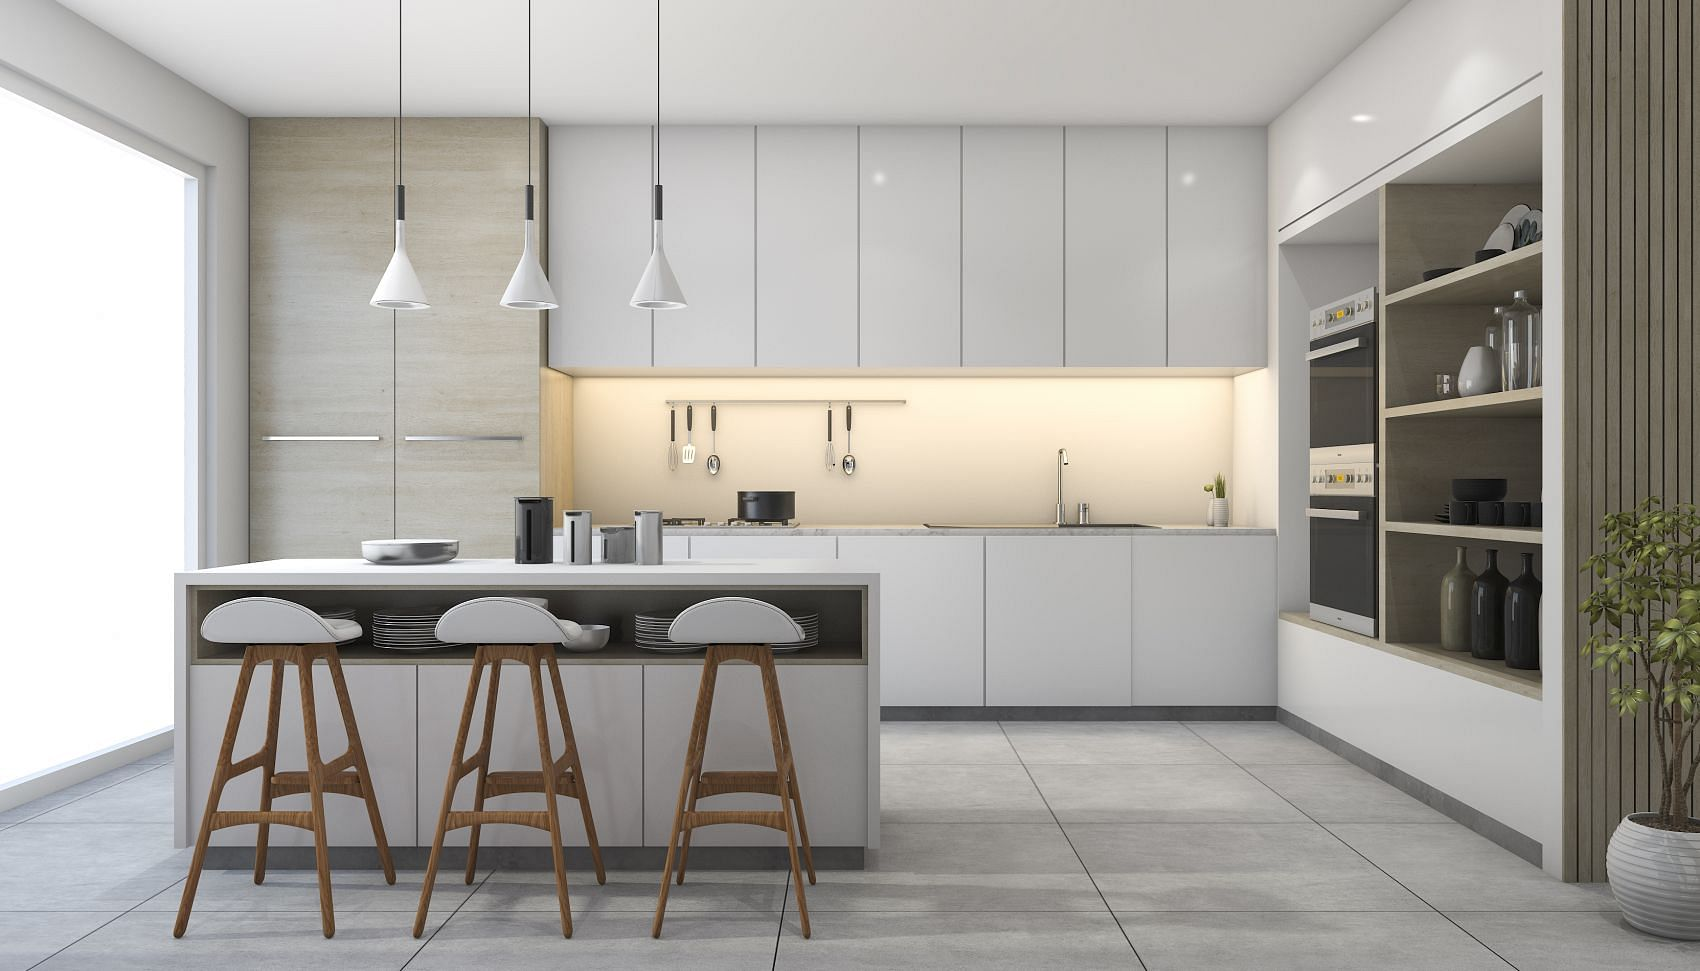 5 Mistakes To Avoid When Renovating Your Kitchen Life News Top Stories The Straits Times